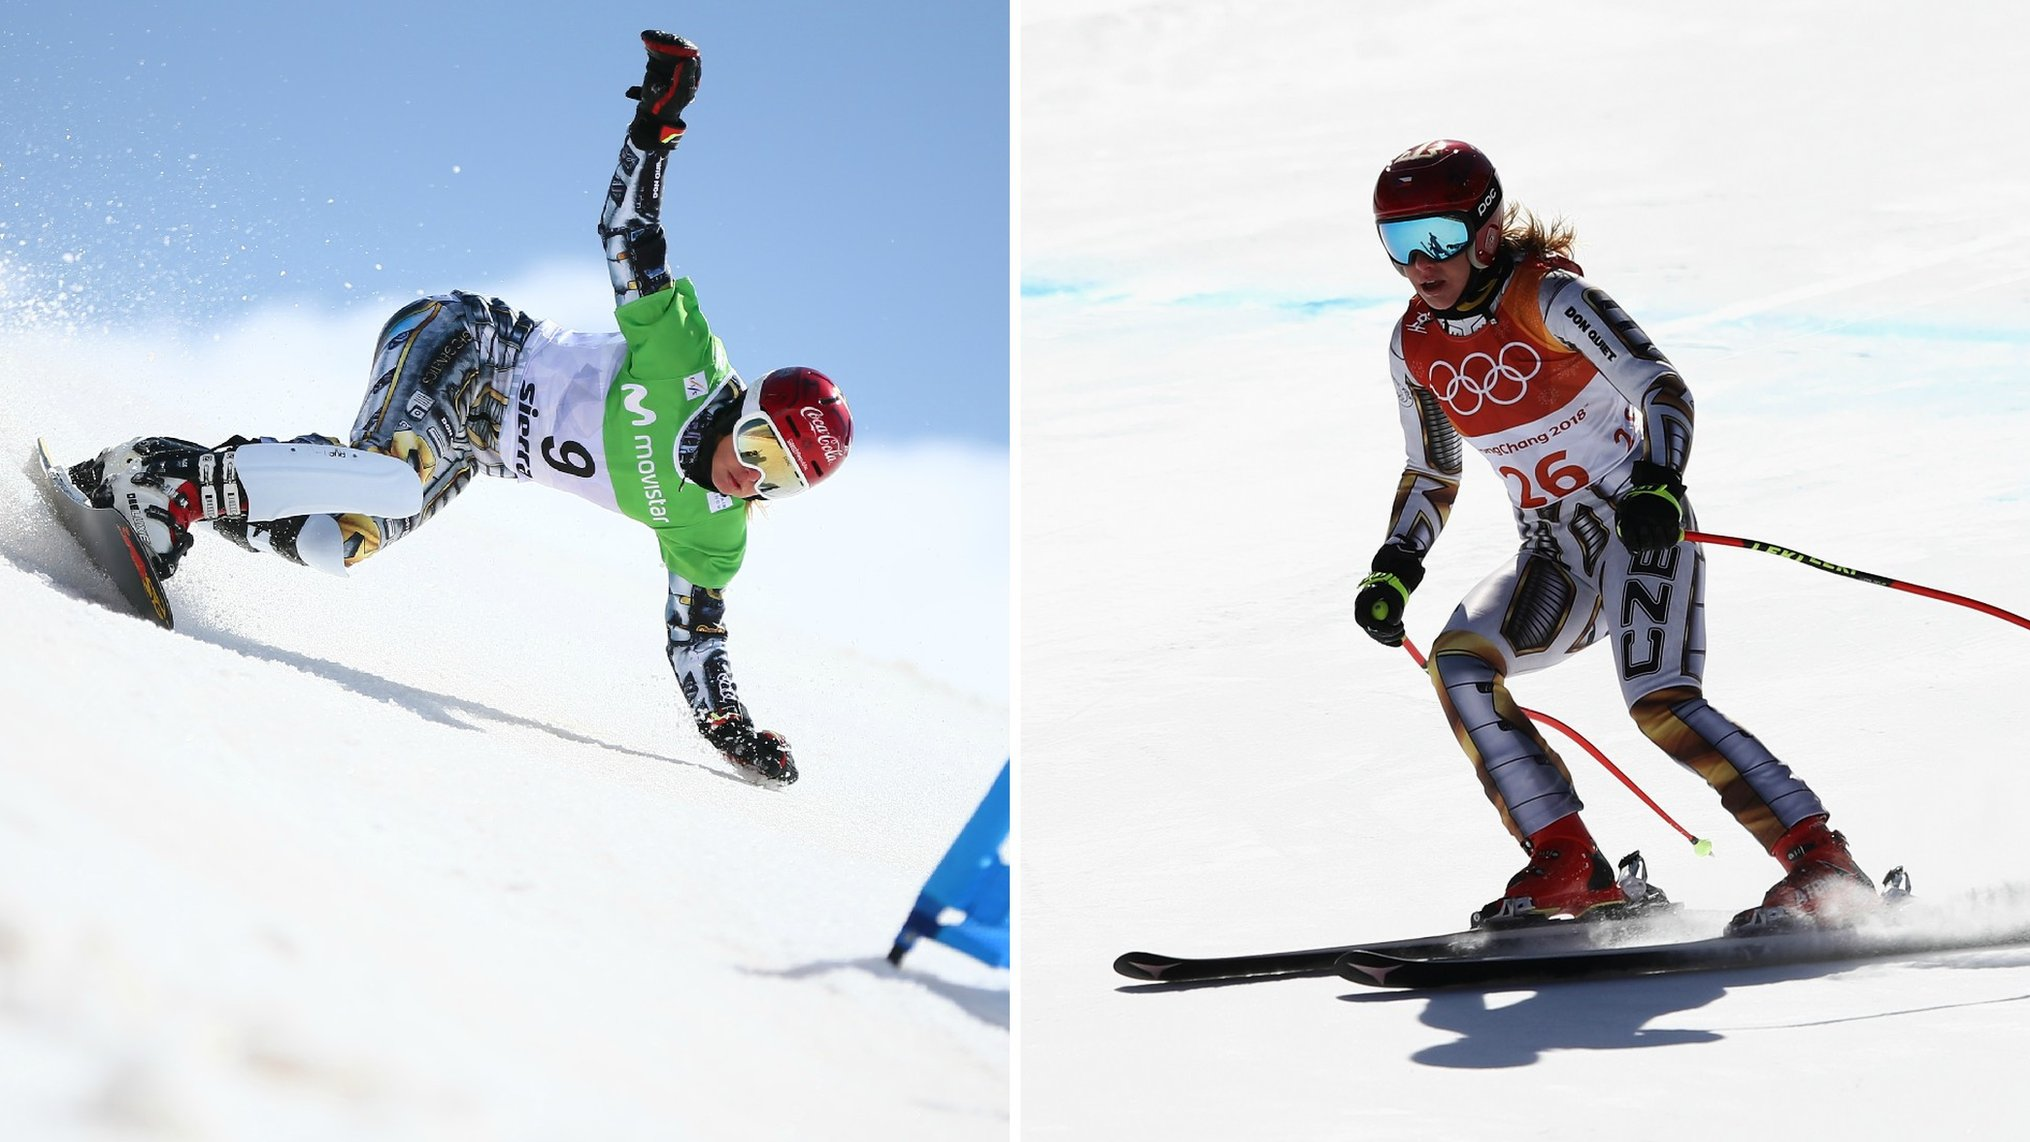 The snowboarder who won skiing gold on borrowed skis